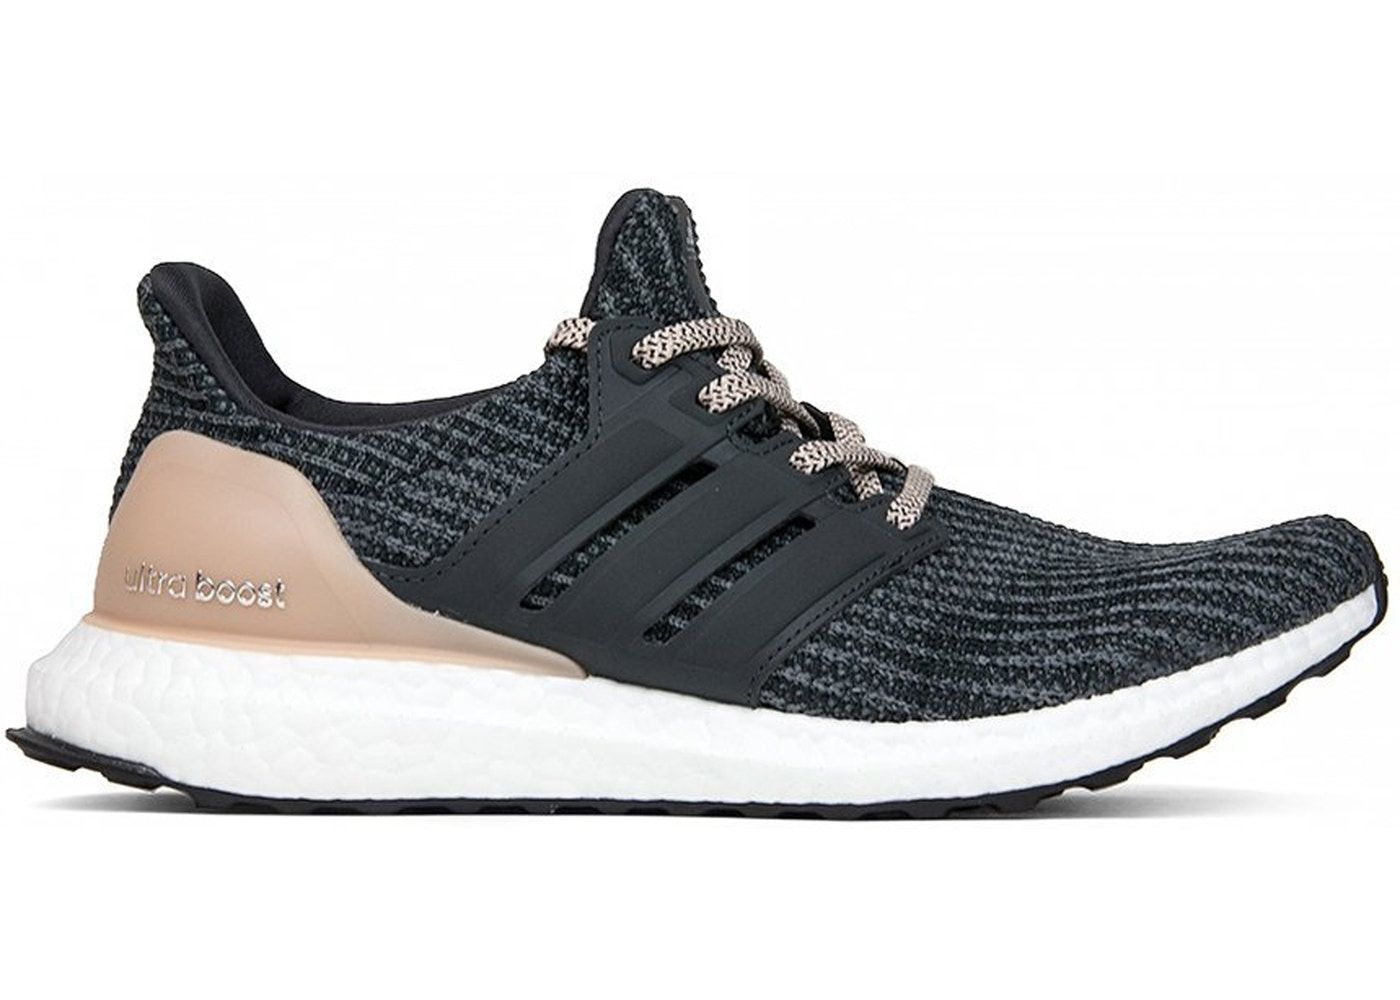 Adidas Ultra Boost 4 0 Grey Five Ash Pearl W In 2020 Adidas Ultra Boost Adidas Ultra Boost Women Cheetah Shoes